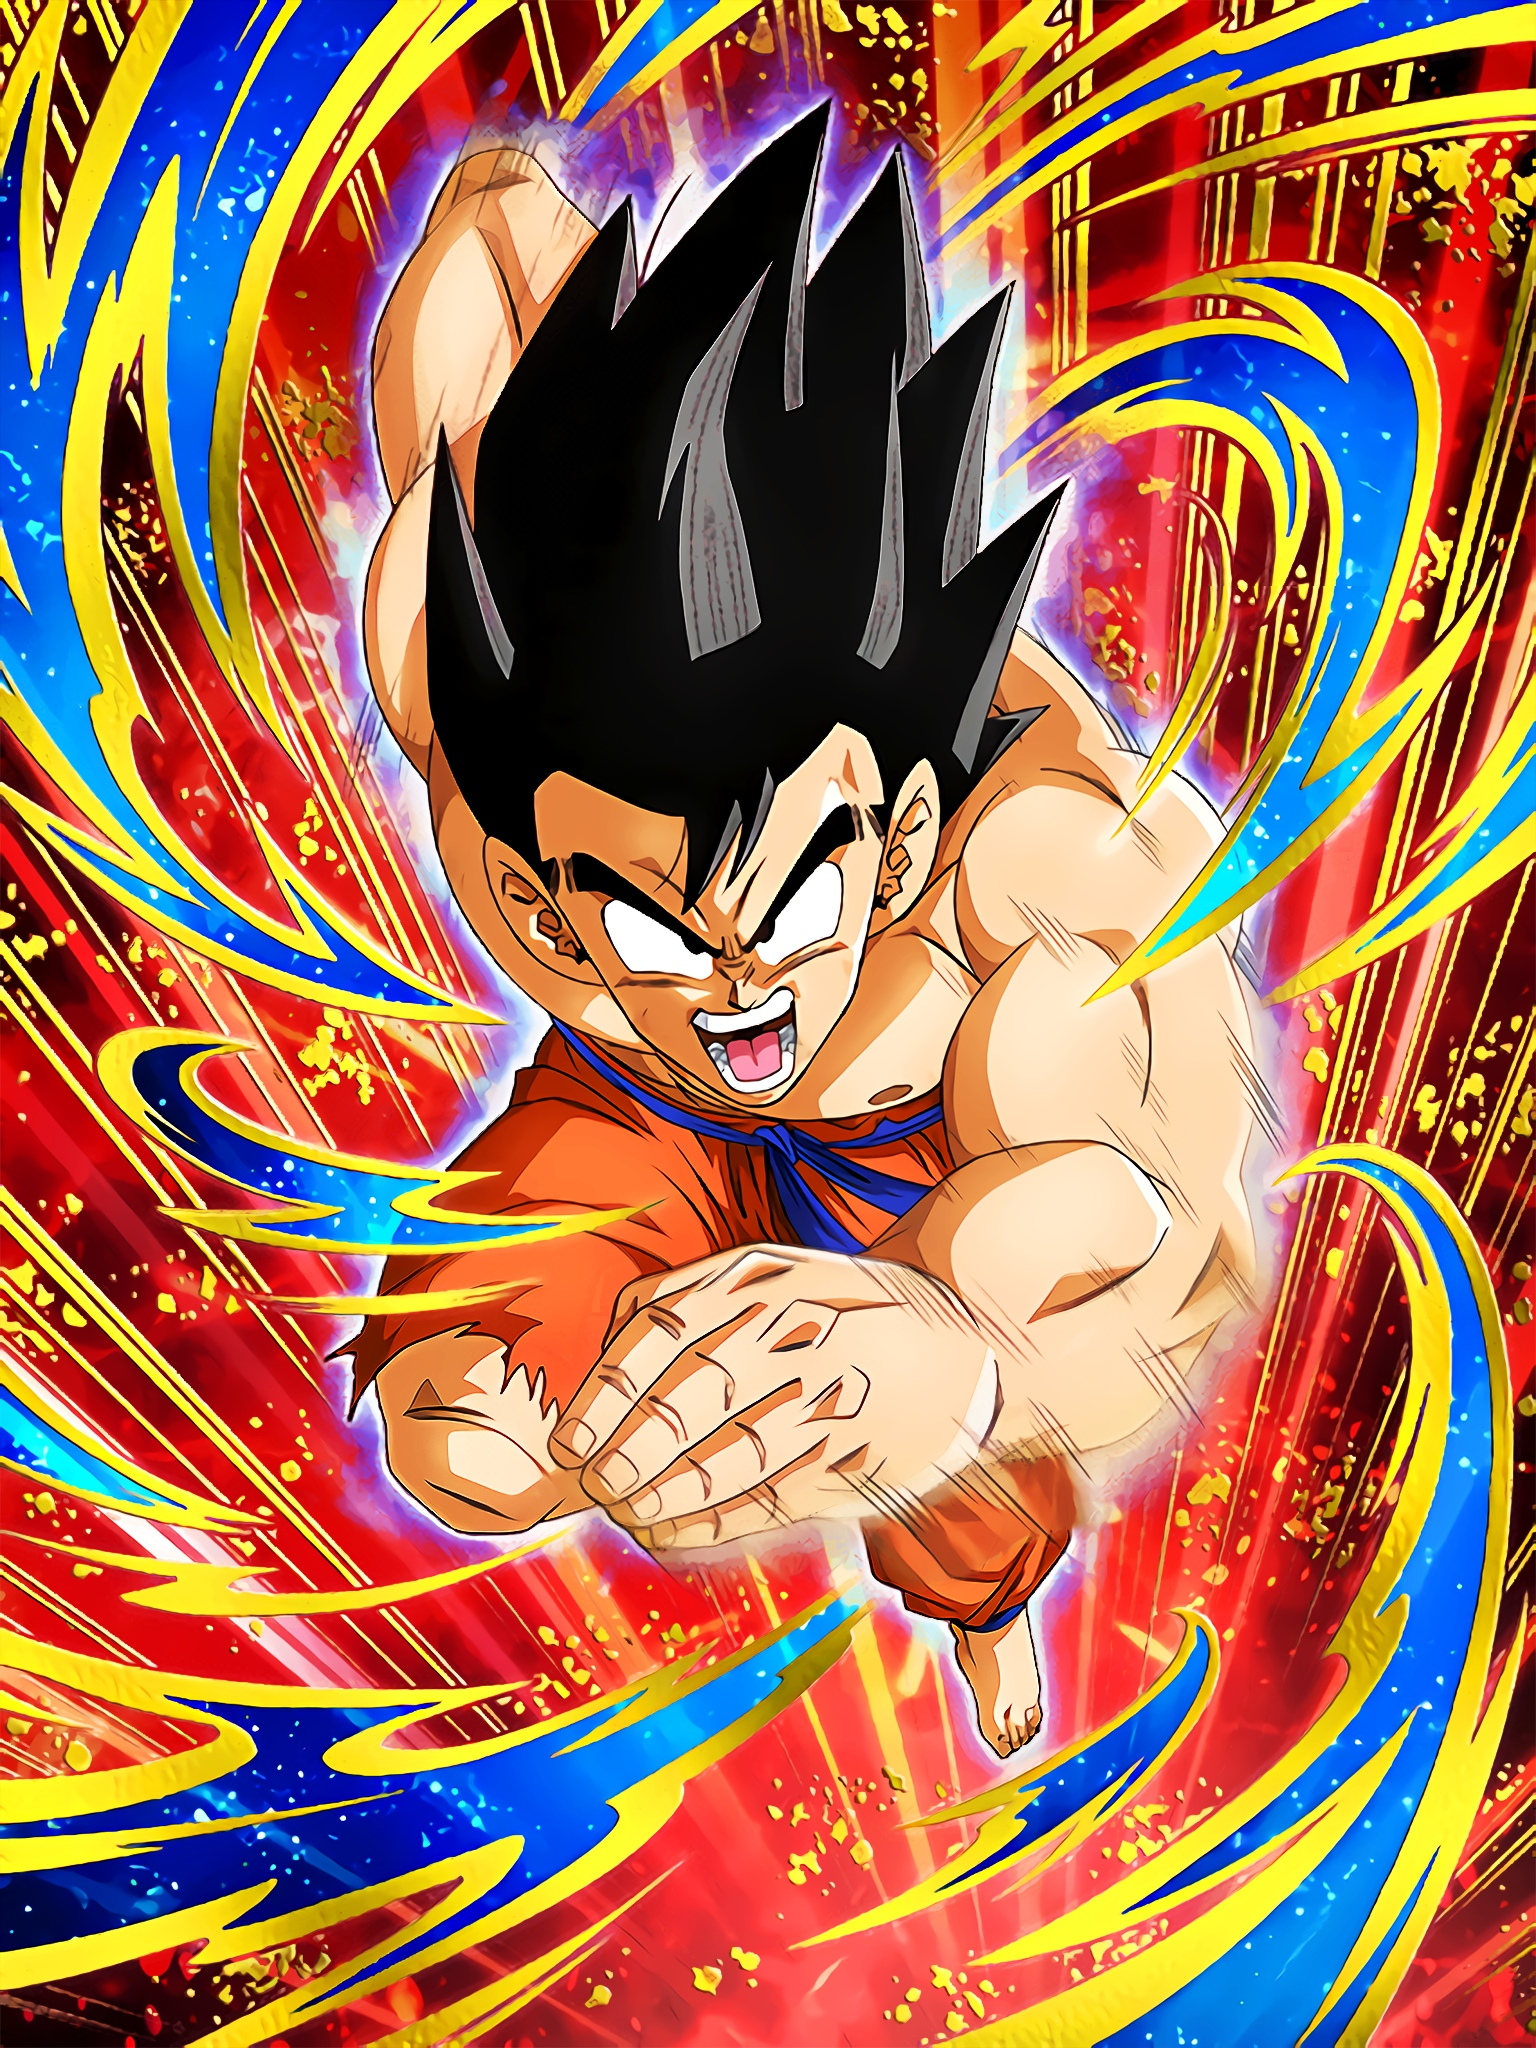 Martial Arts Fighter Goku Art (Dragon Ball Z Dokkan Battle).jpg